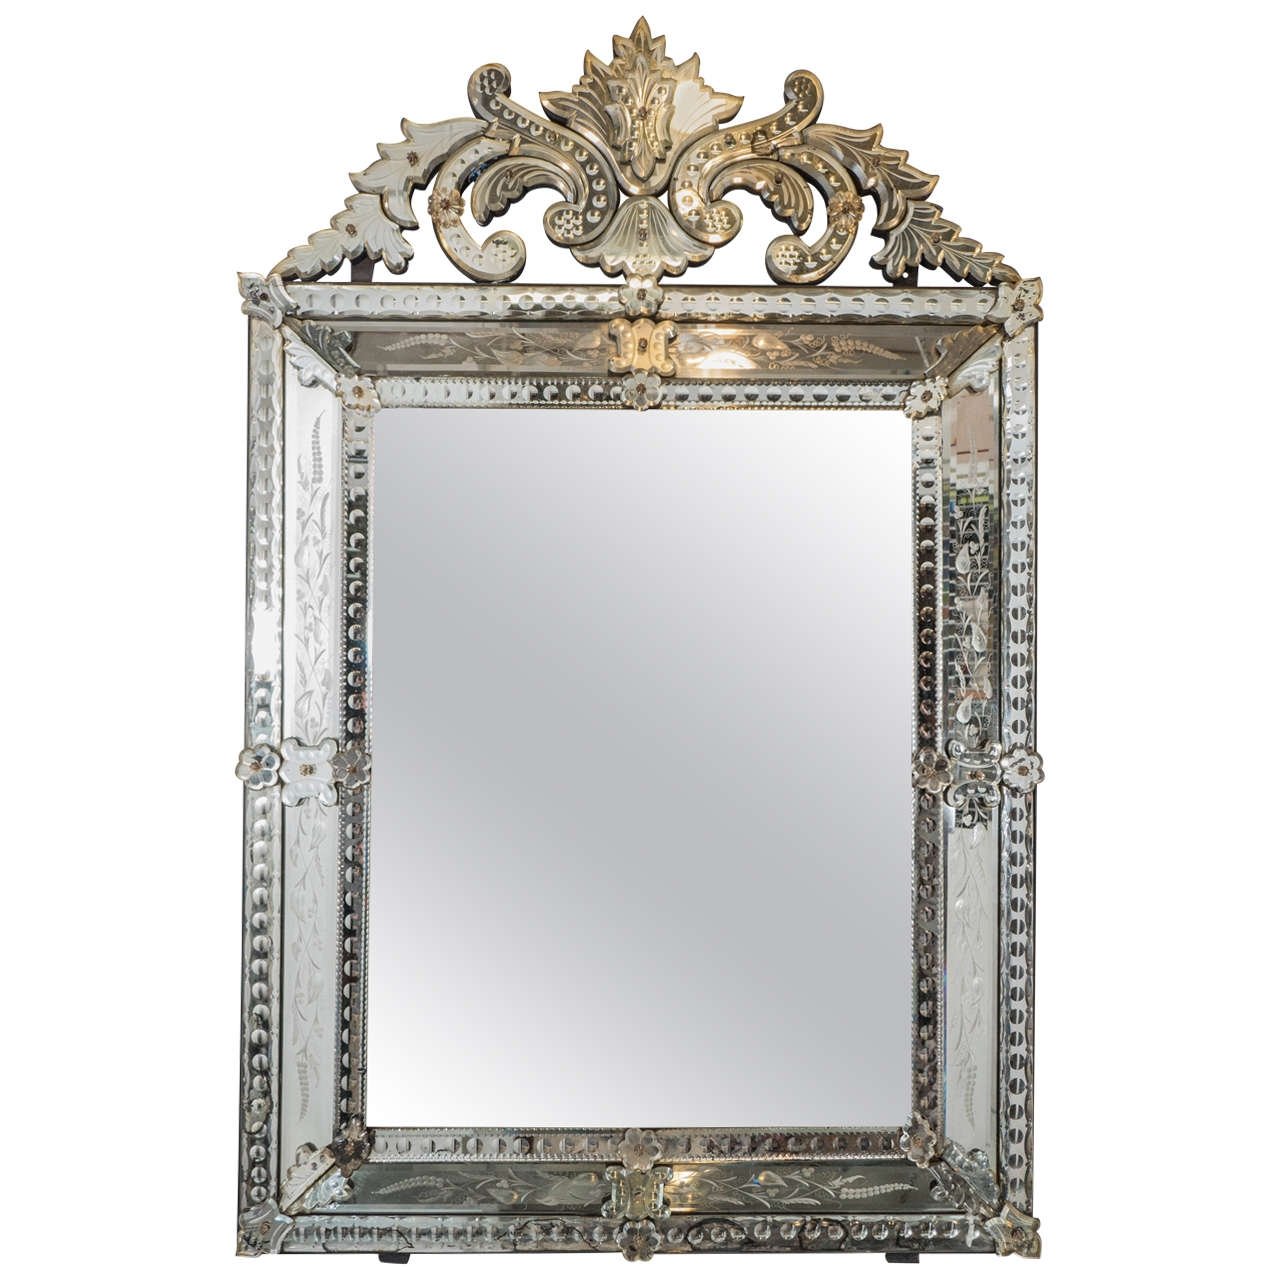 Venetian Wall Mirror Wall Shelves For Venetian Wall Mirror (Image 13 of 15)